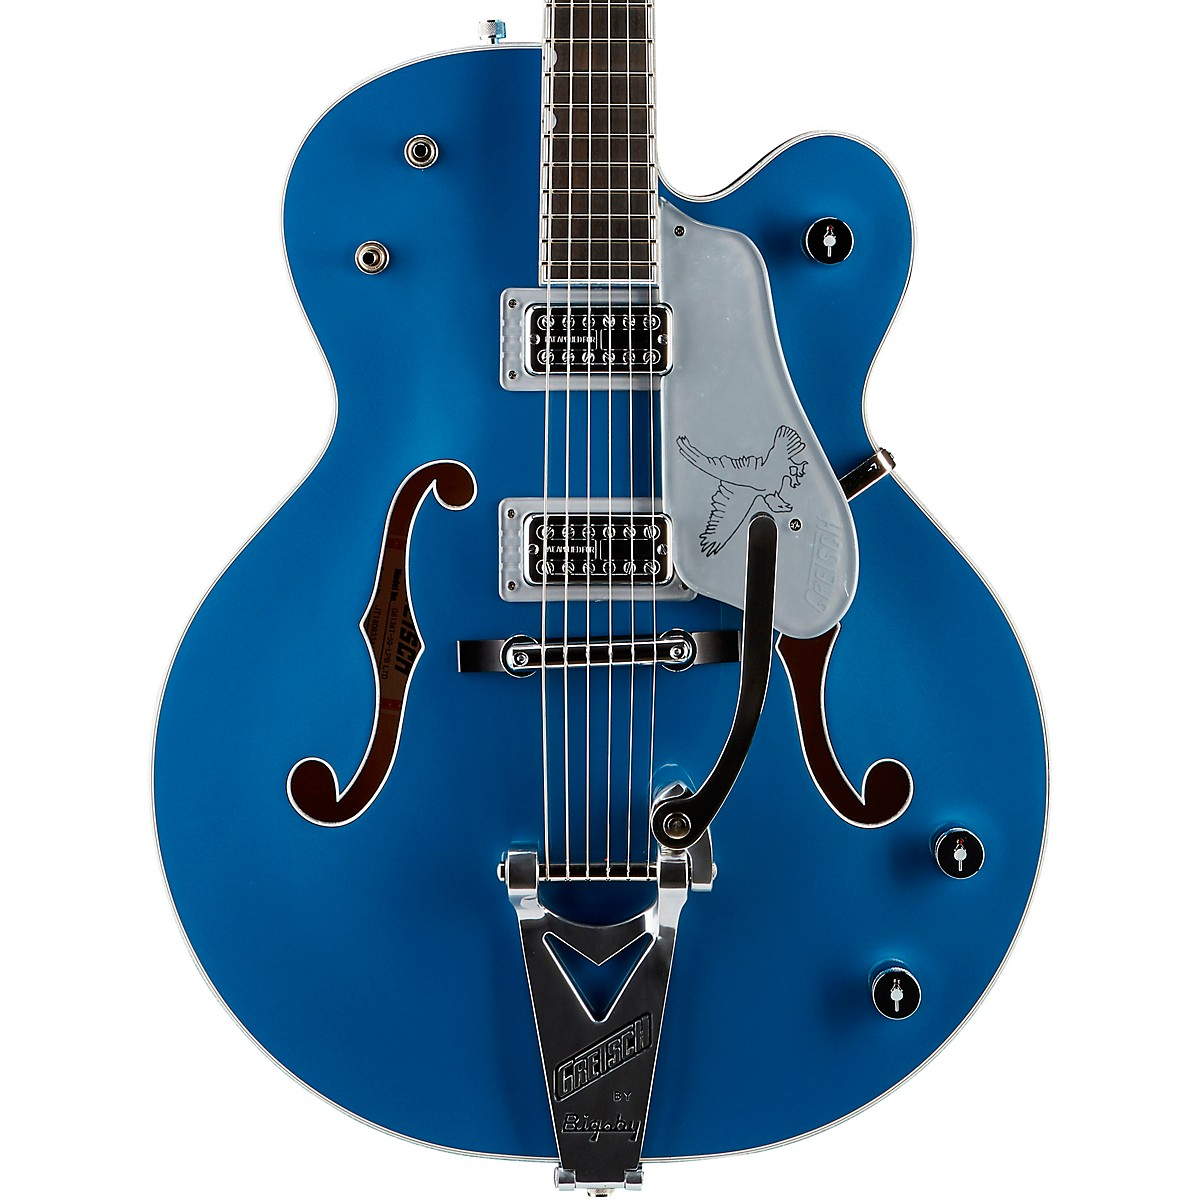 Gretsch Guitars G6136T-59 Falcon with Bigsby Limited Edition Semi-Hollow Electric Guitar